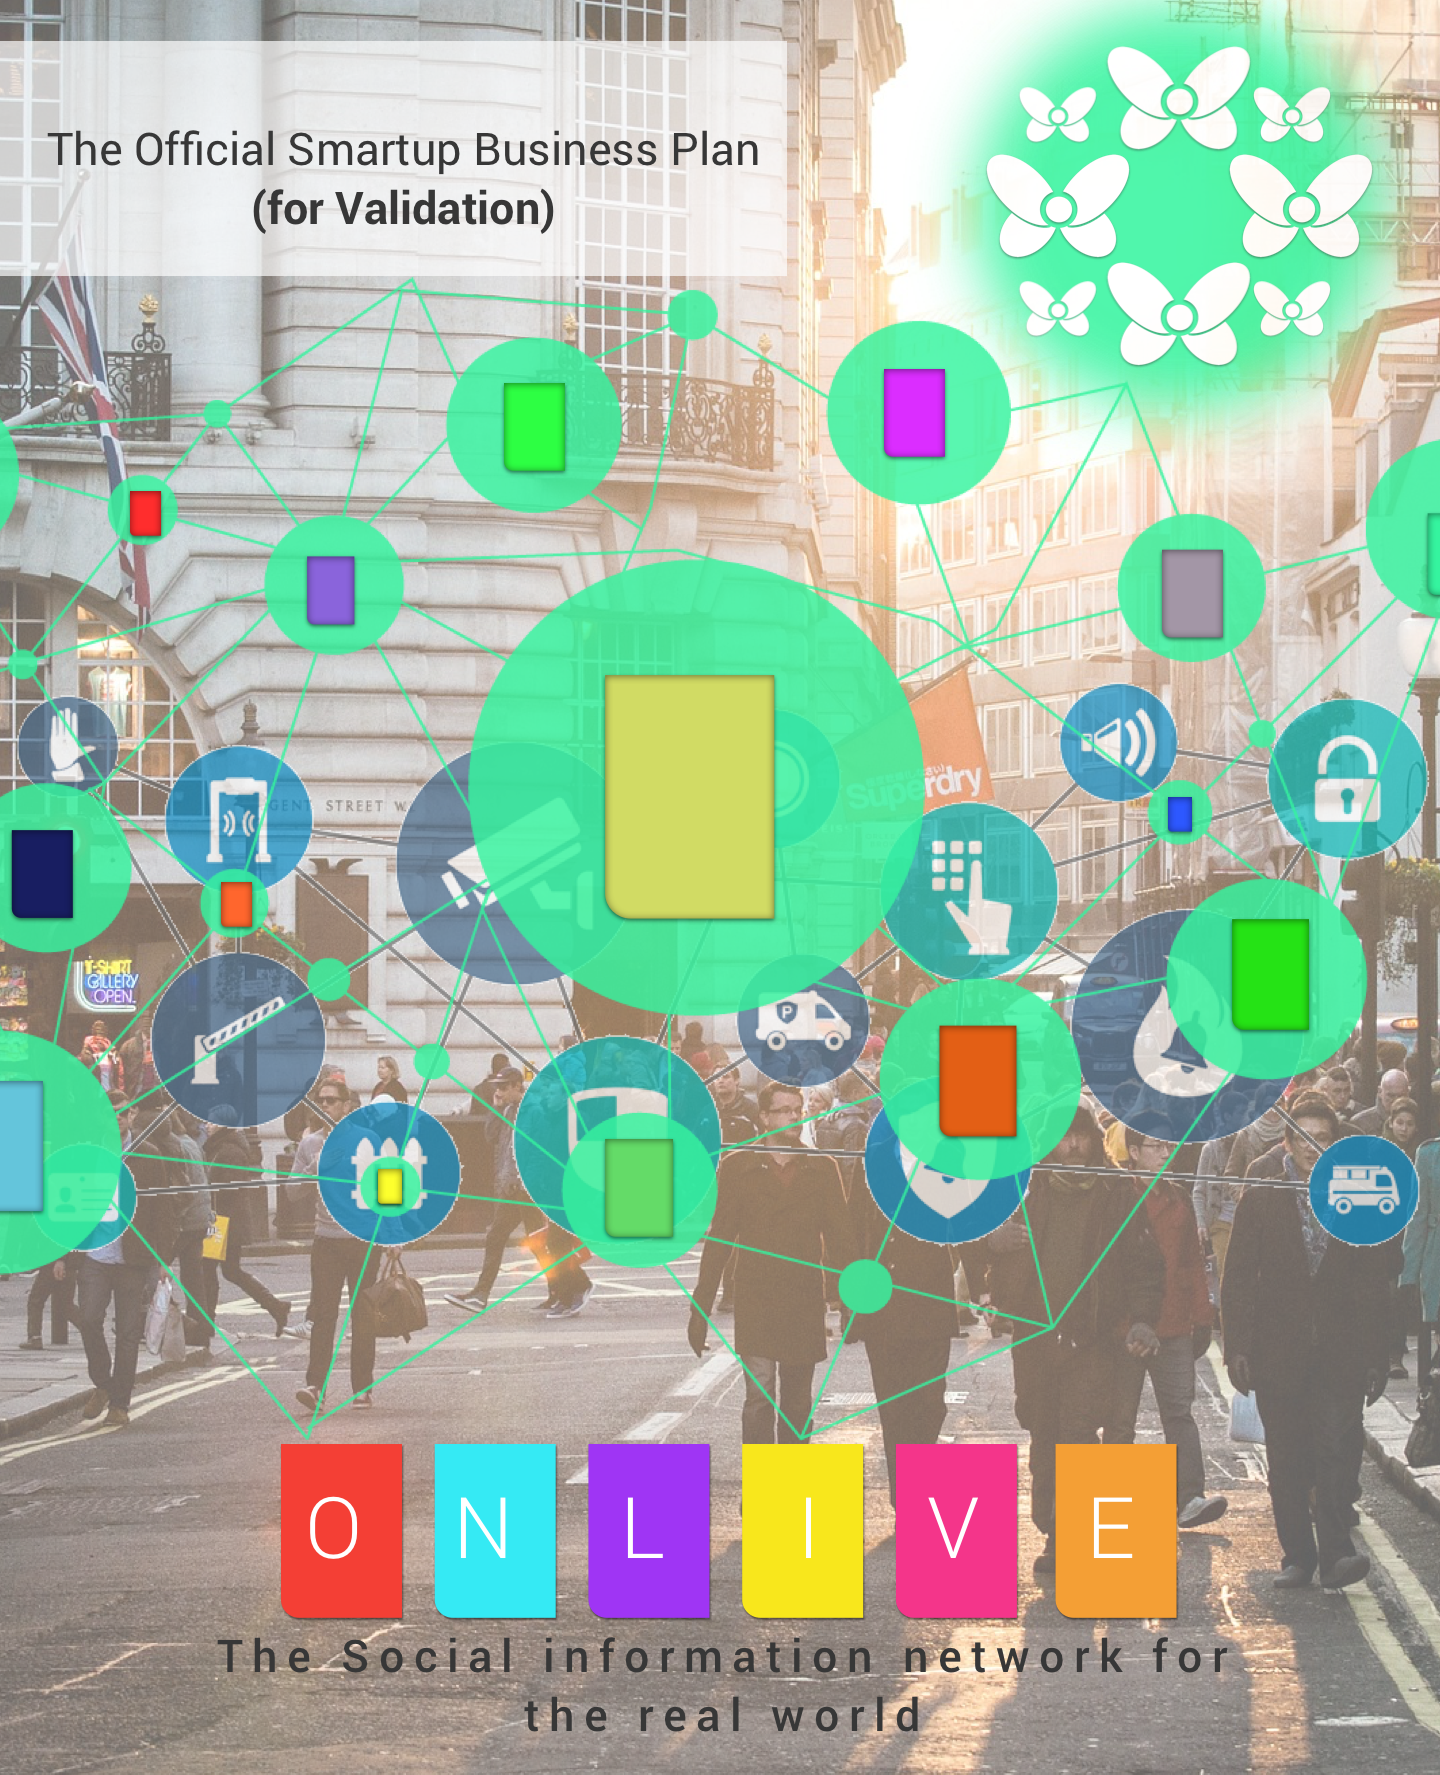 Onlive cover.png